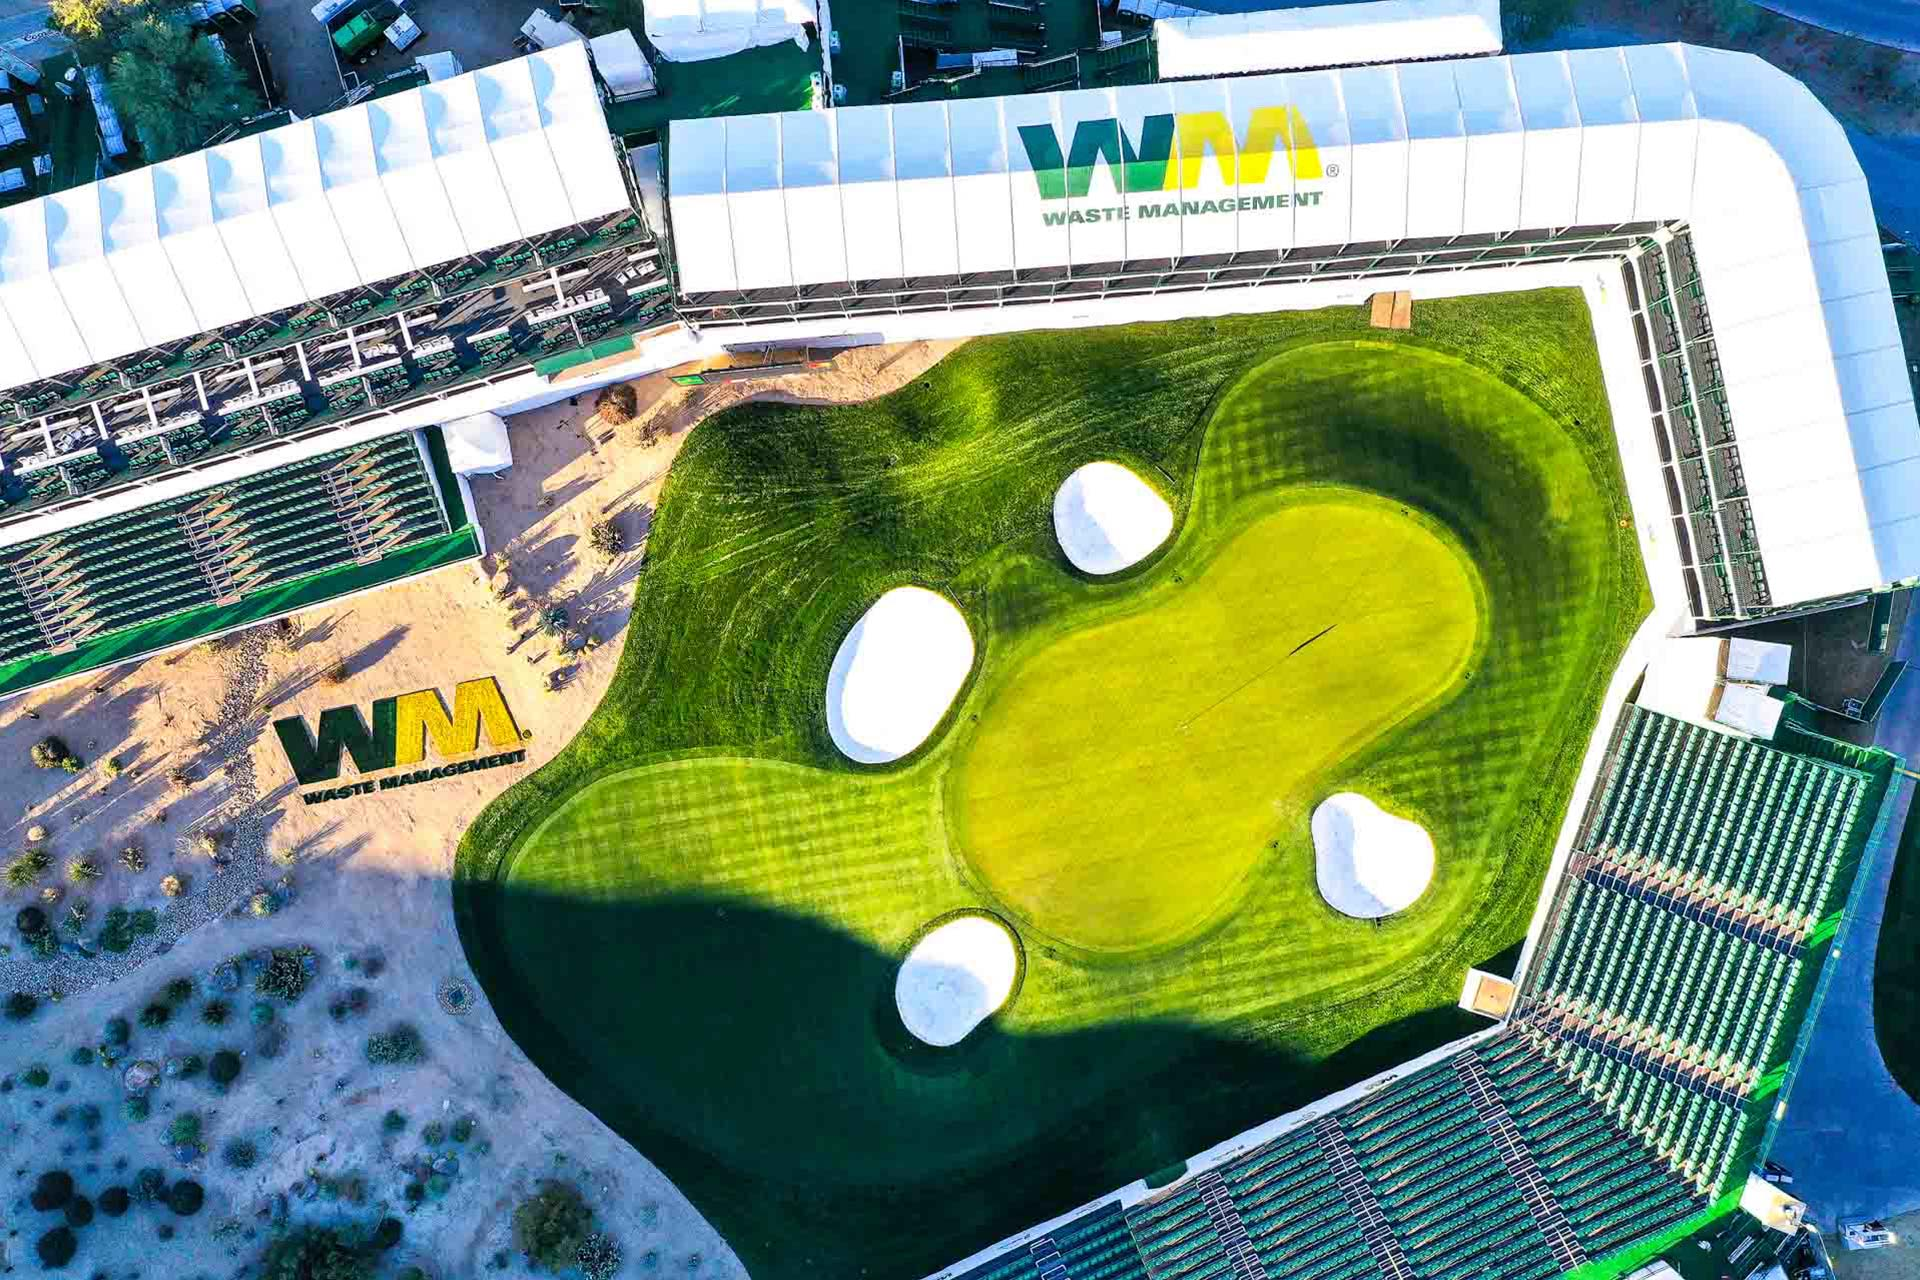 Tickets Now On Sale For 2020 Waste Management Phoenix Open